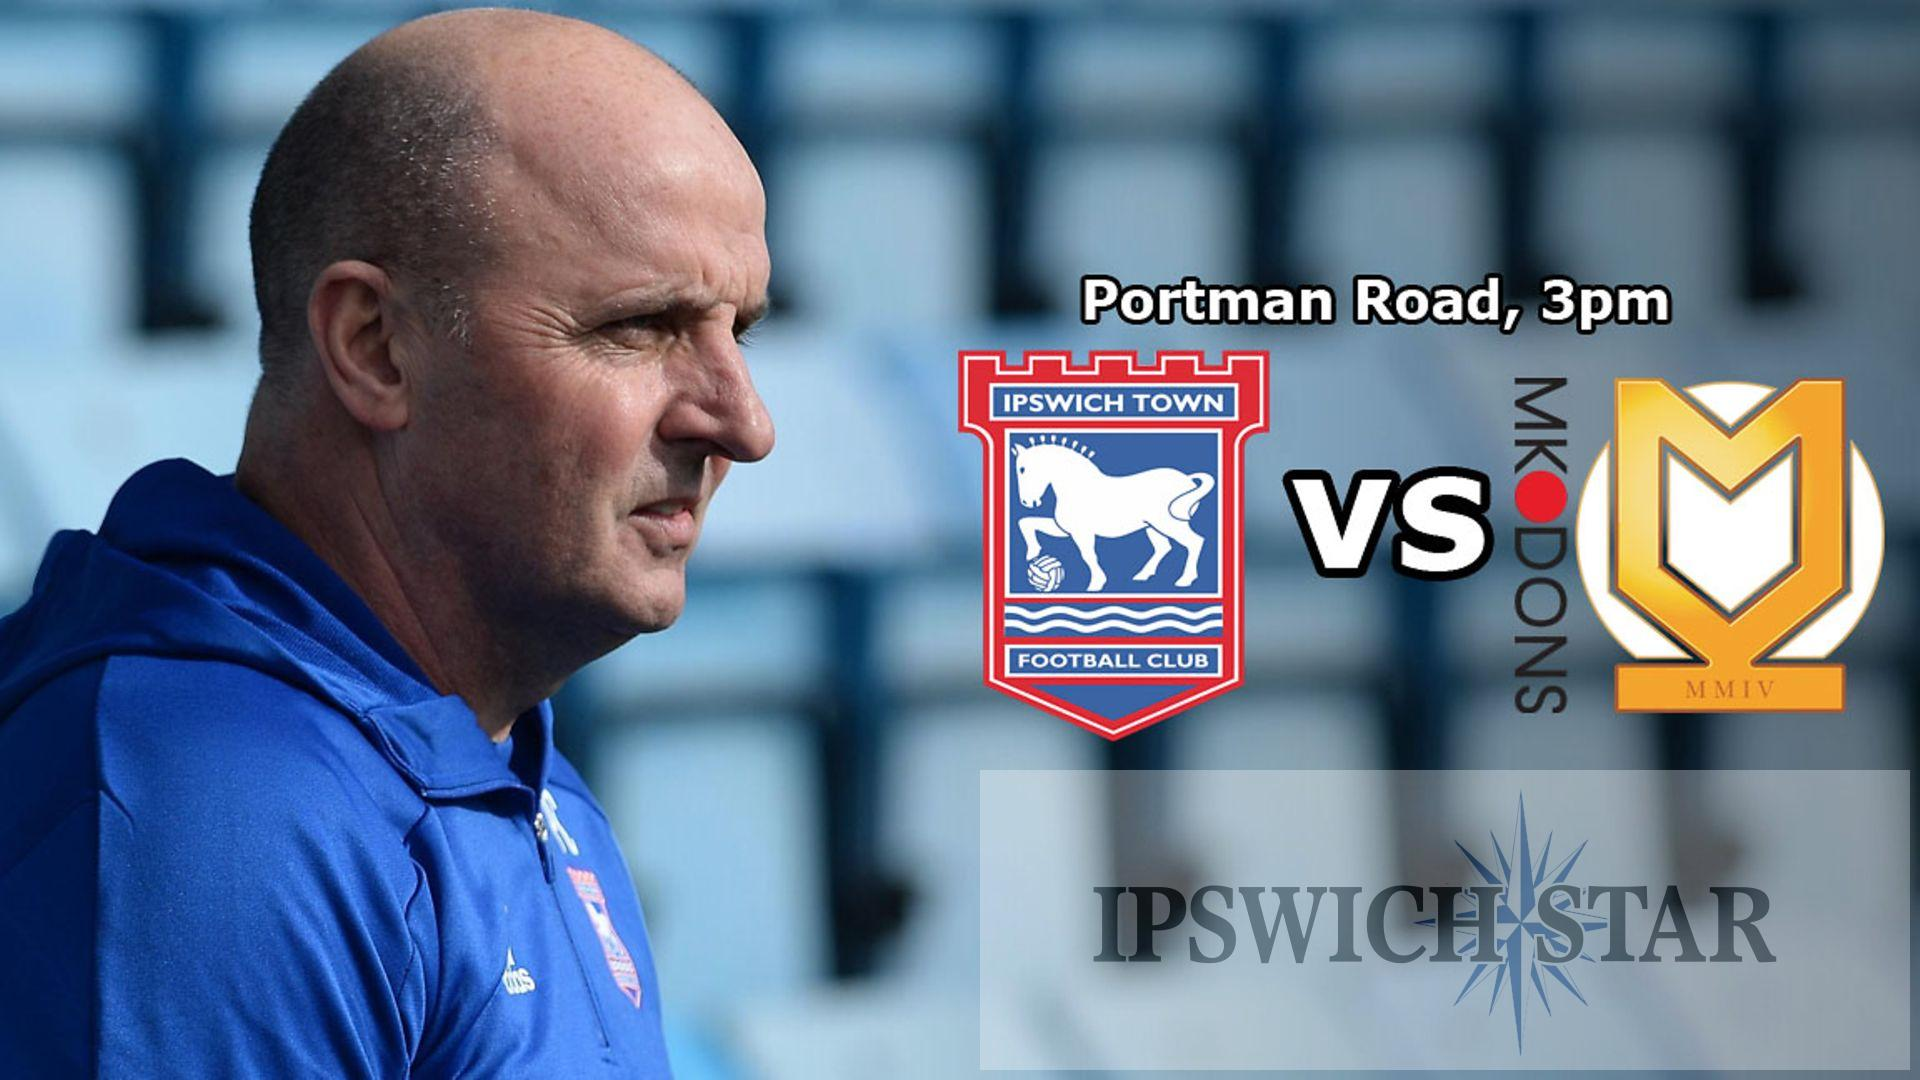 Matchday Live: American era begins at Portman Road as MK Dons visit